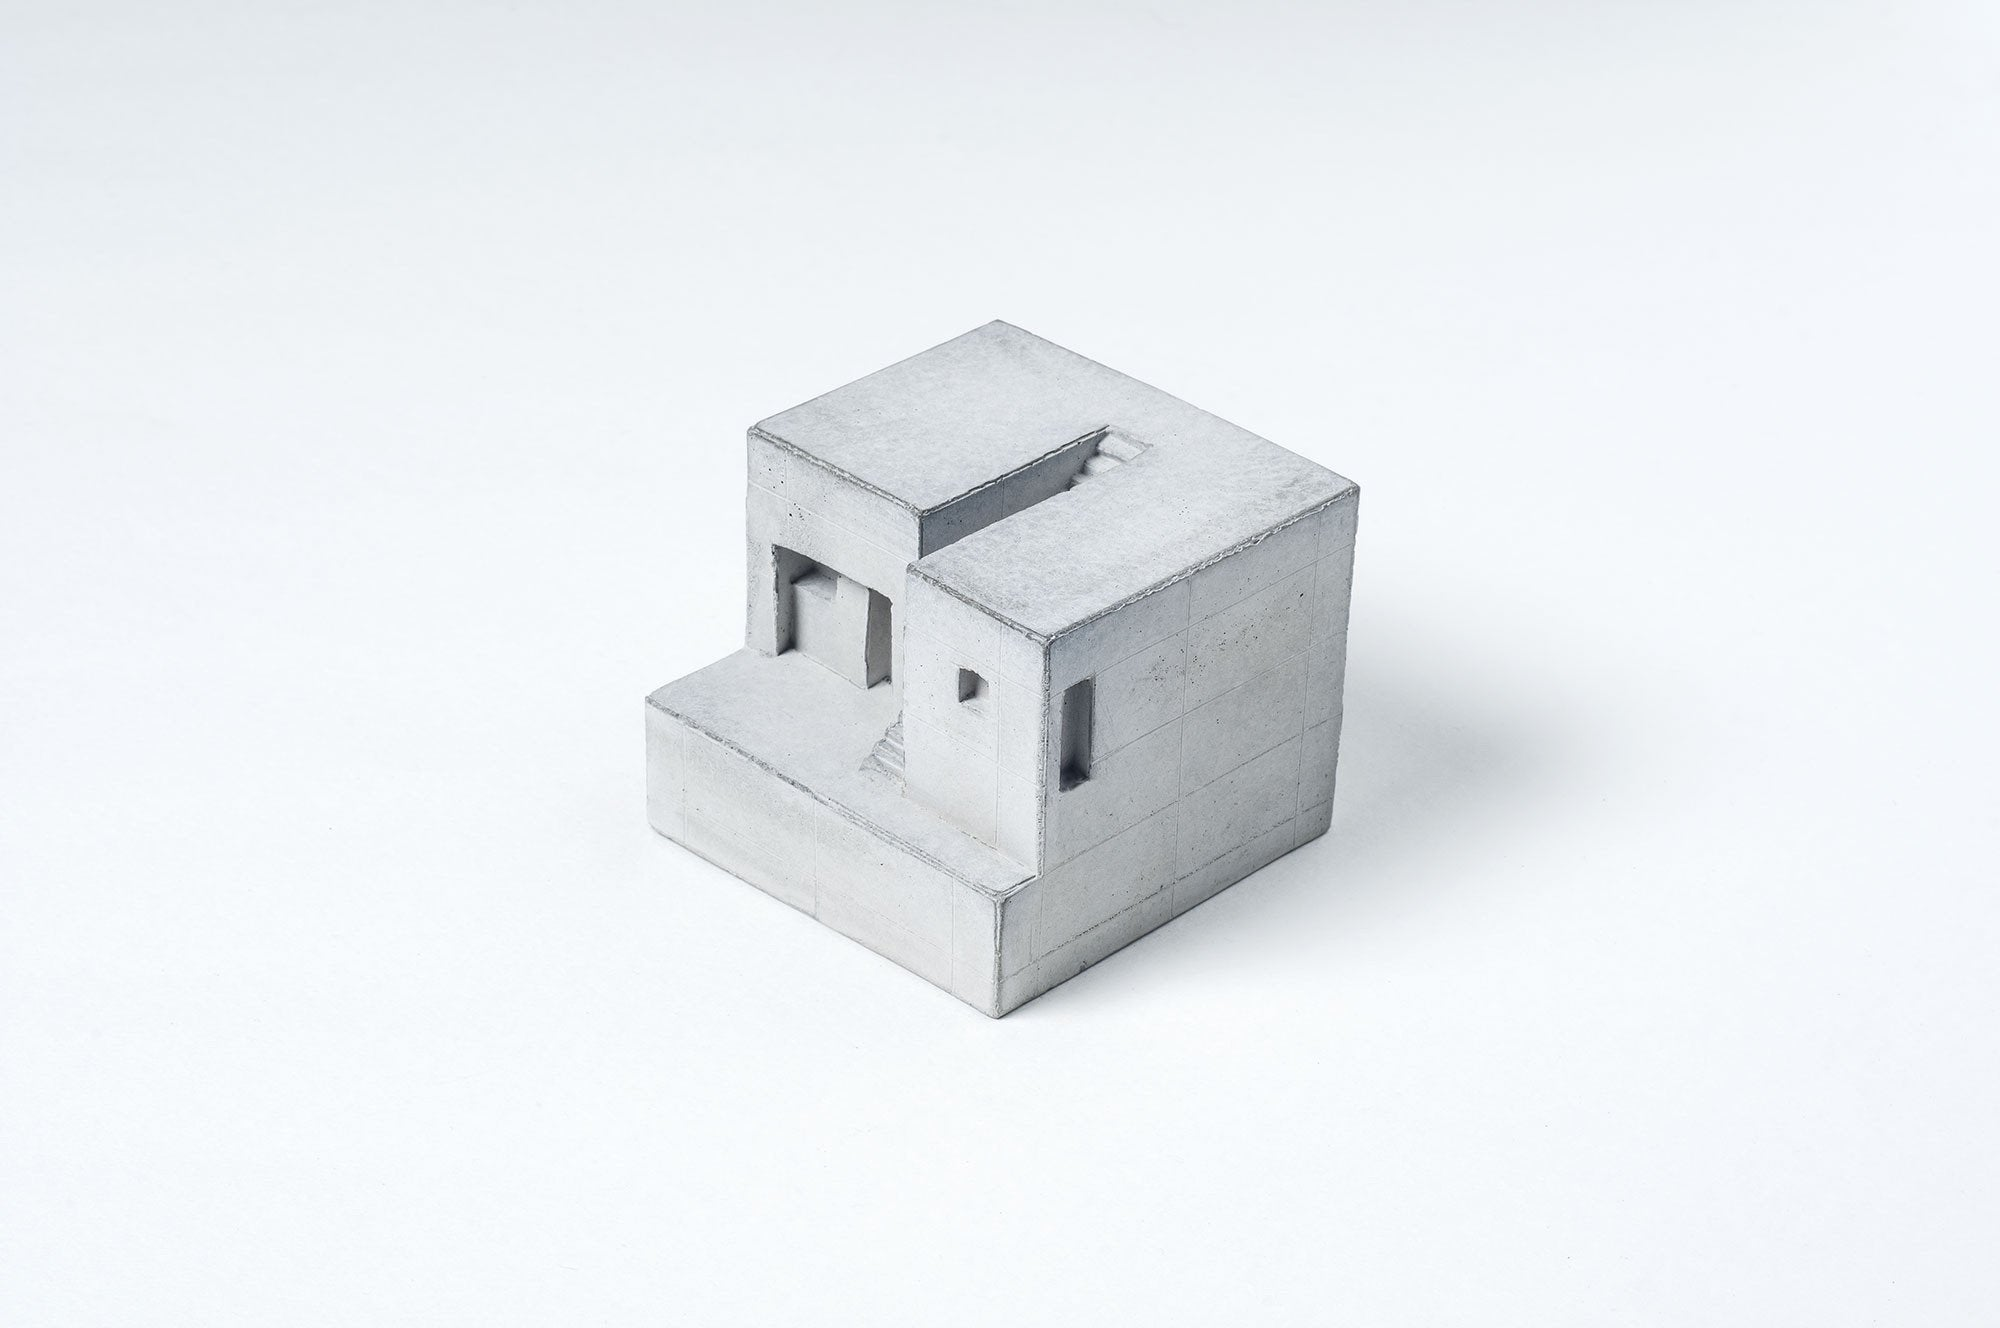 Miniature Concrete Home #4